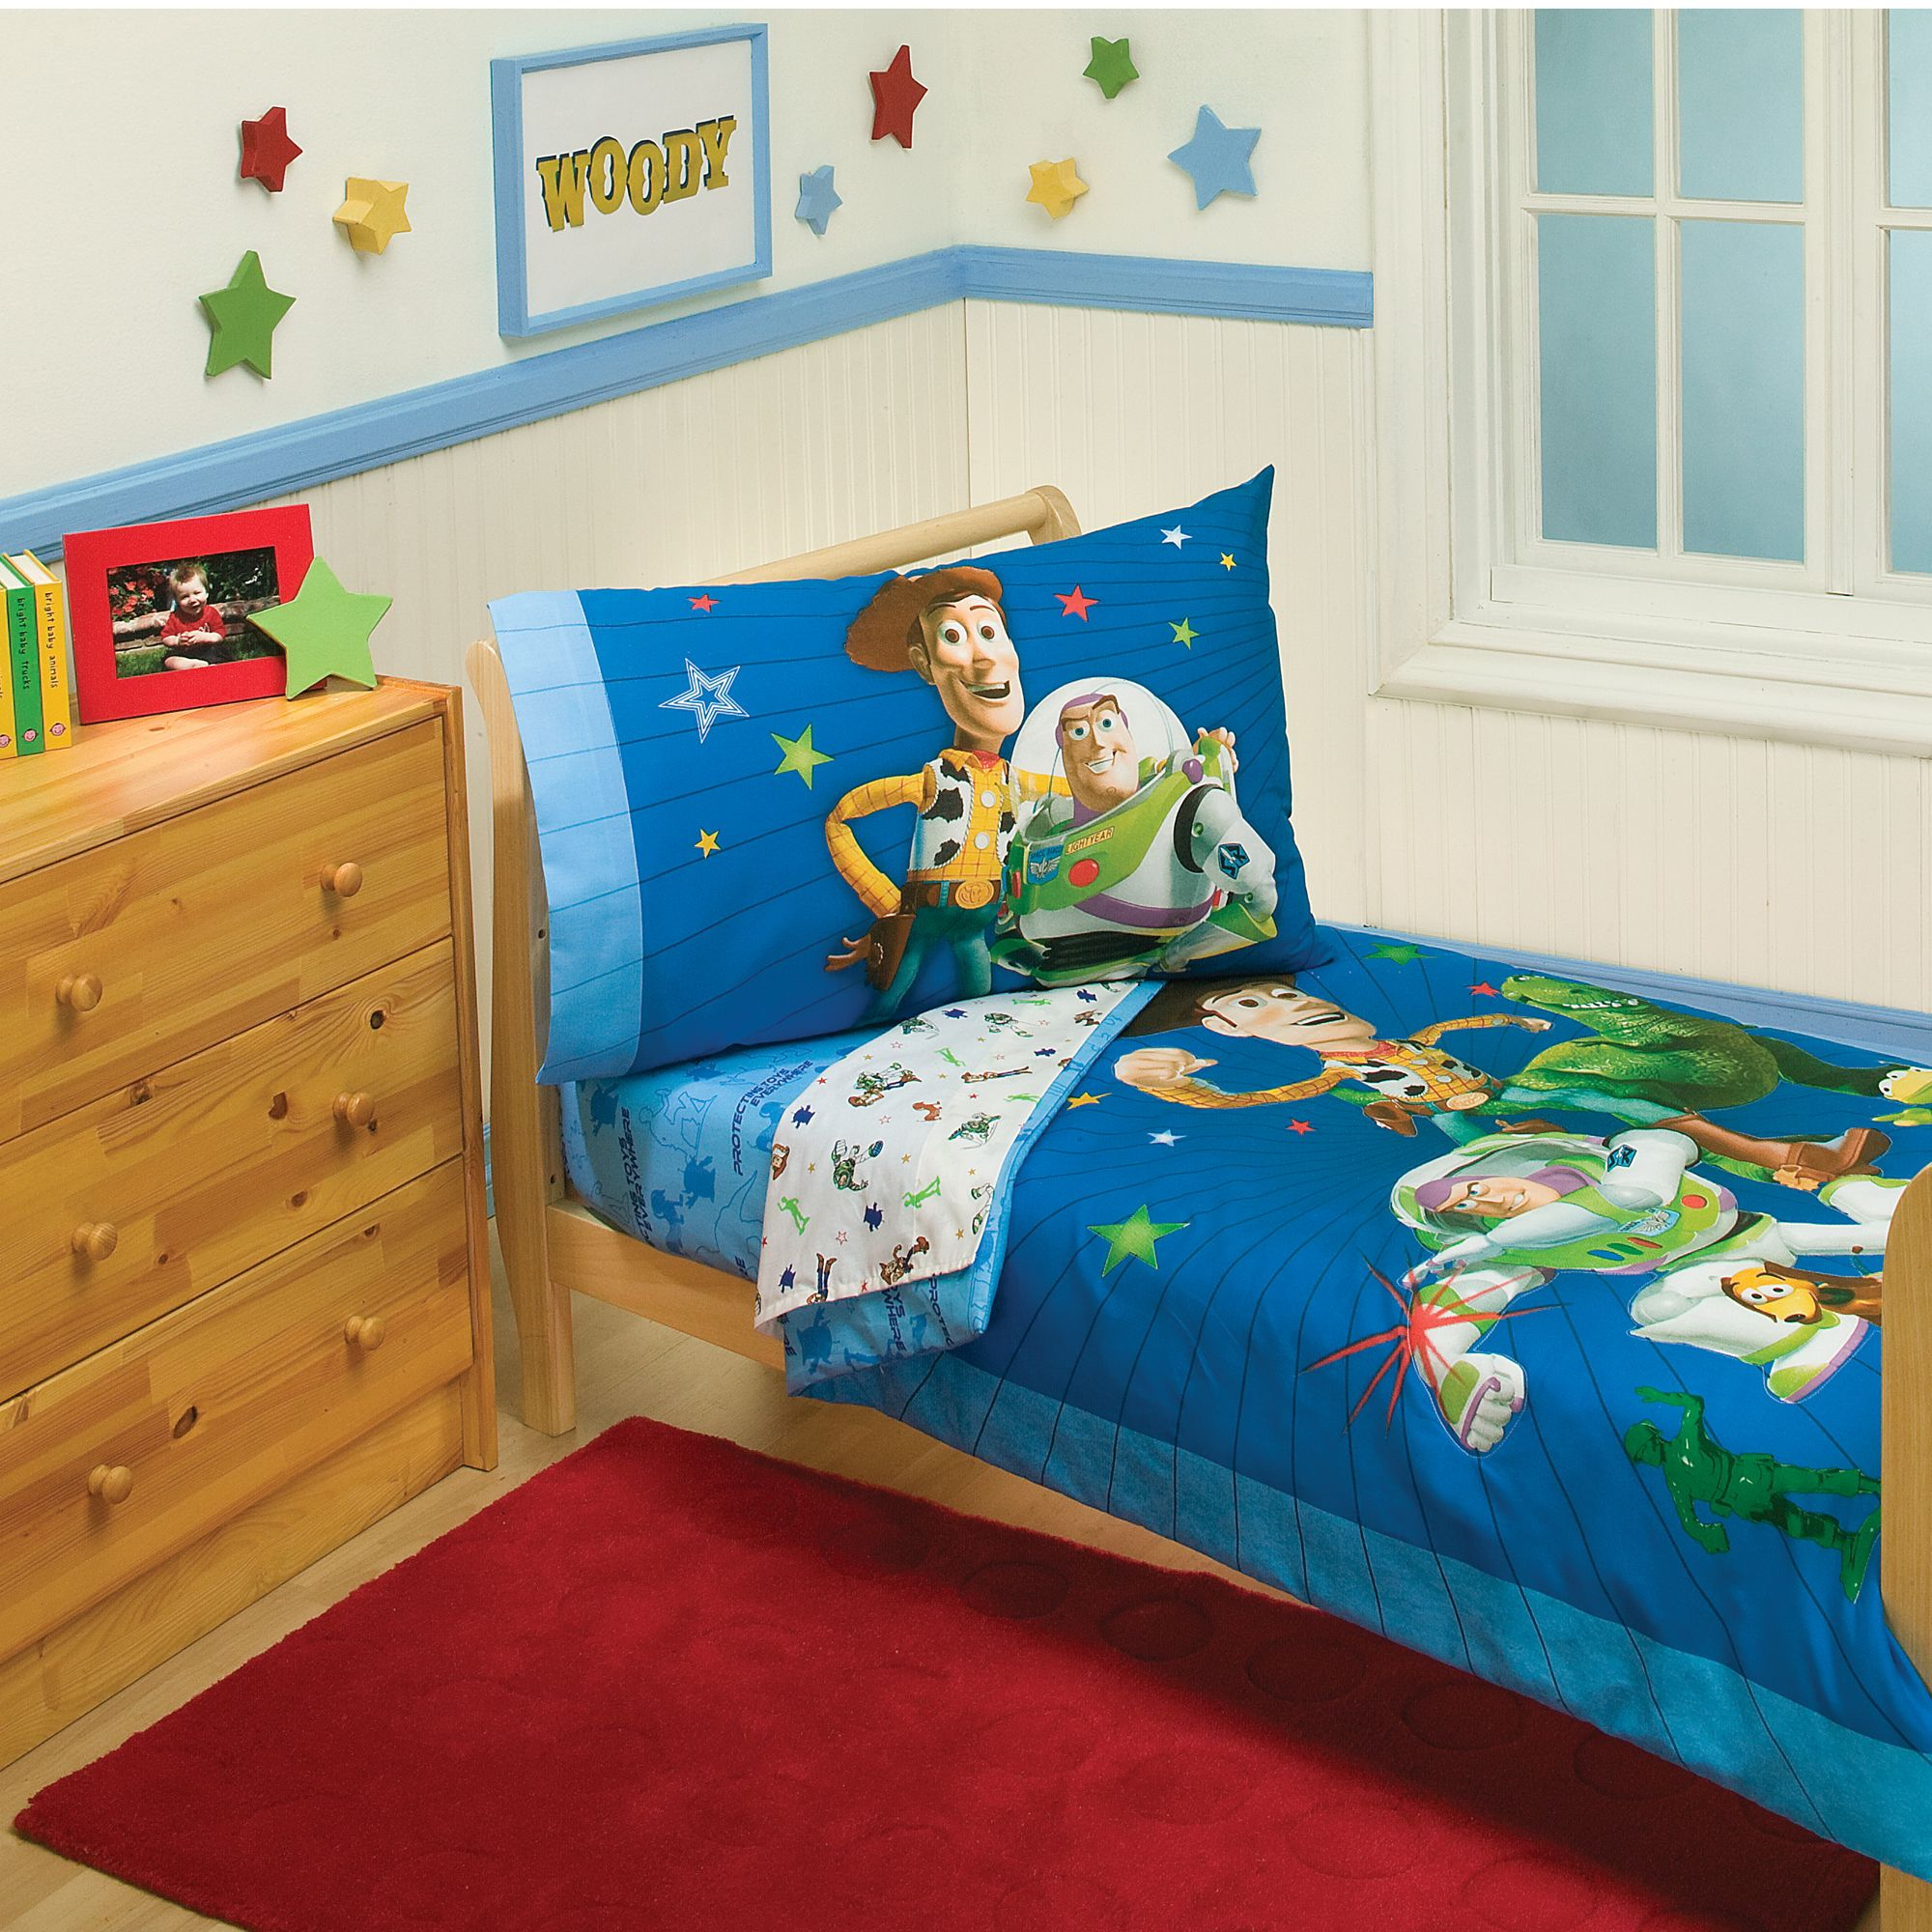 Disney Toy Story 4-piece Toddler Bed Set